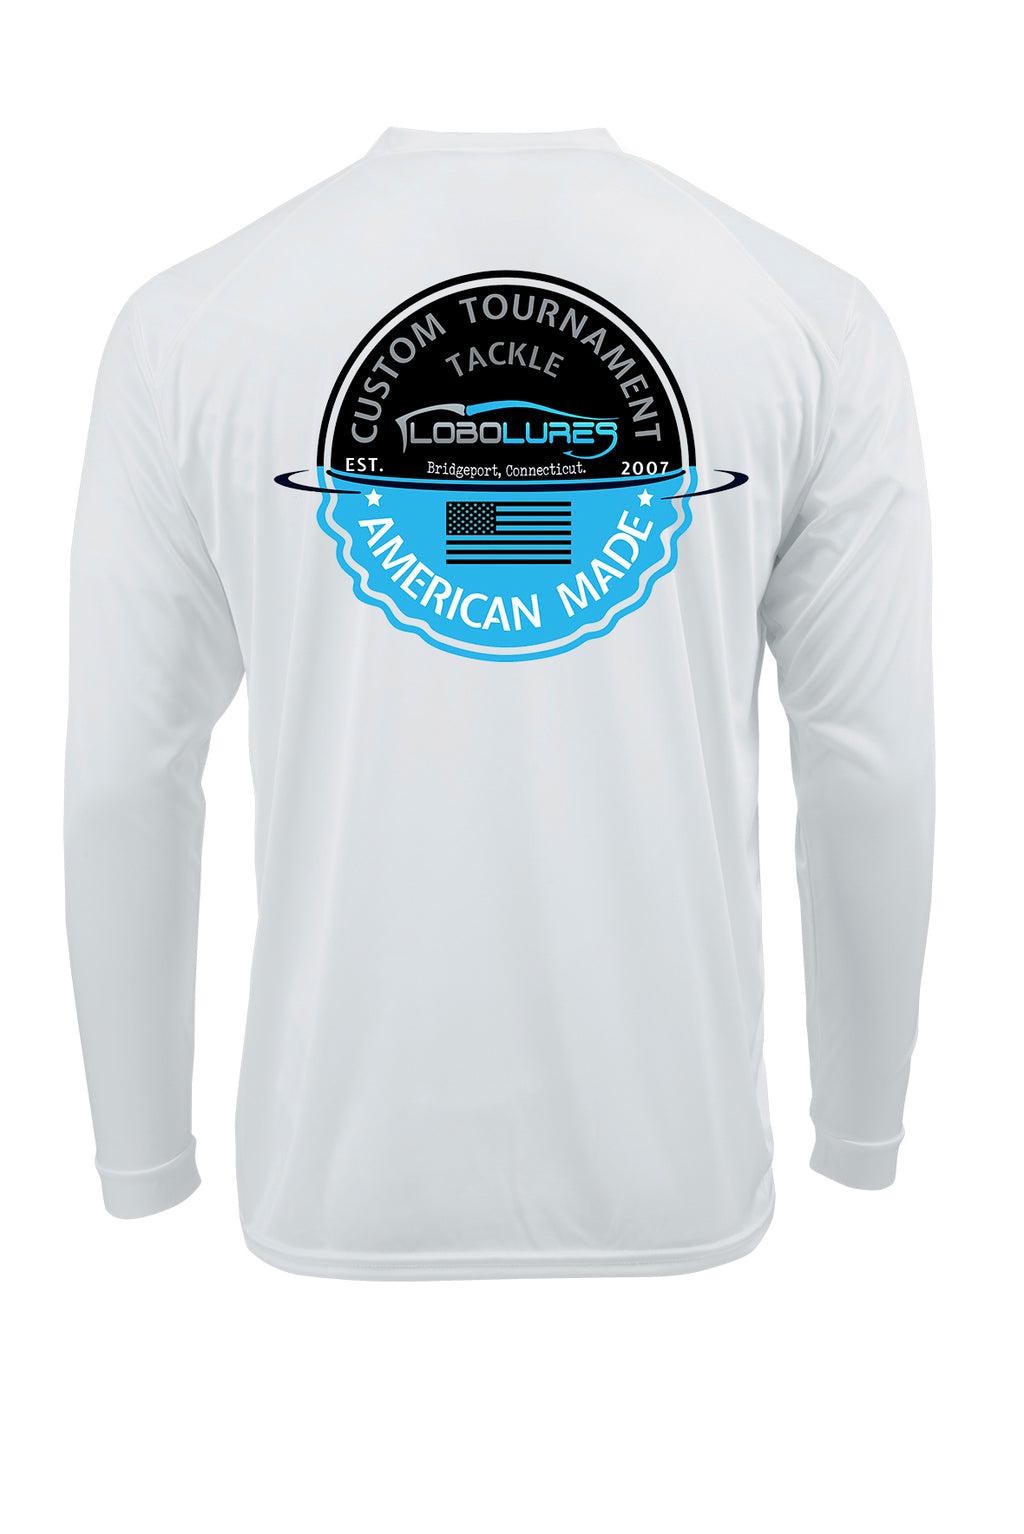 Lobo Lures Tournament Series Performance UPF 50+ T-shirt